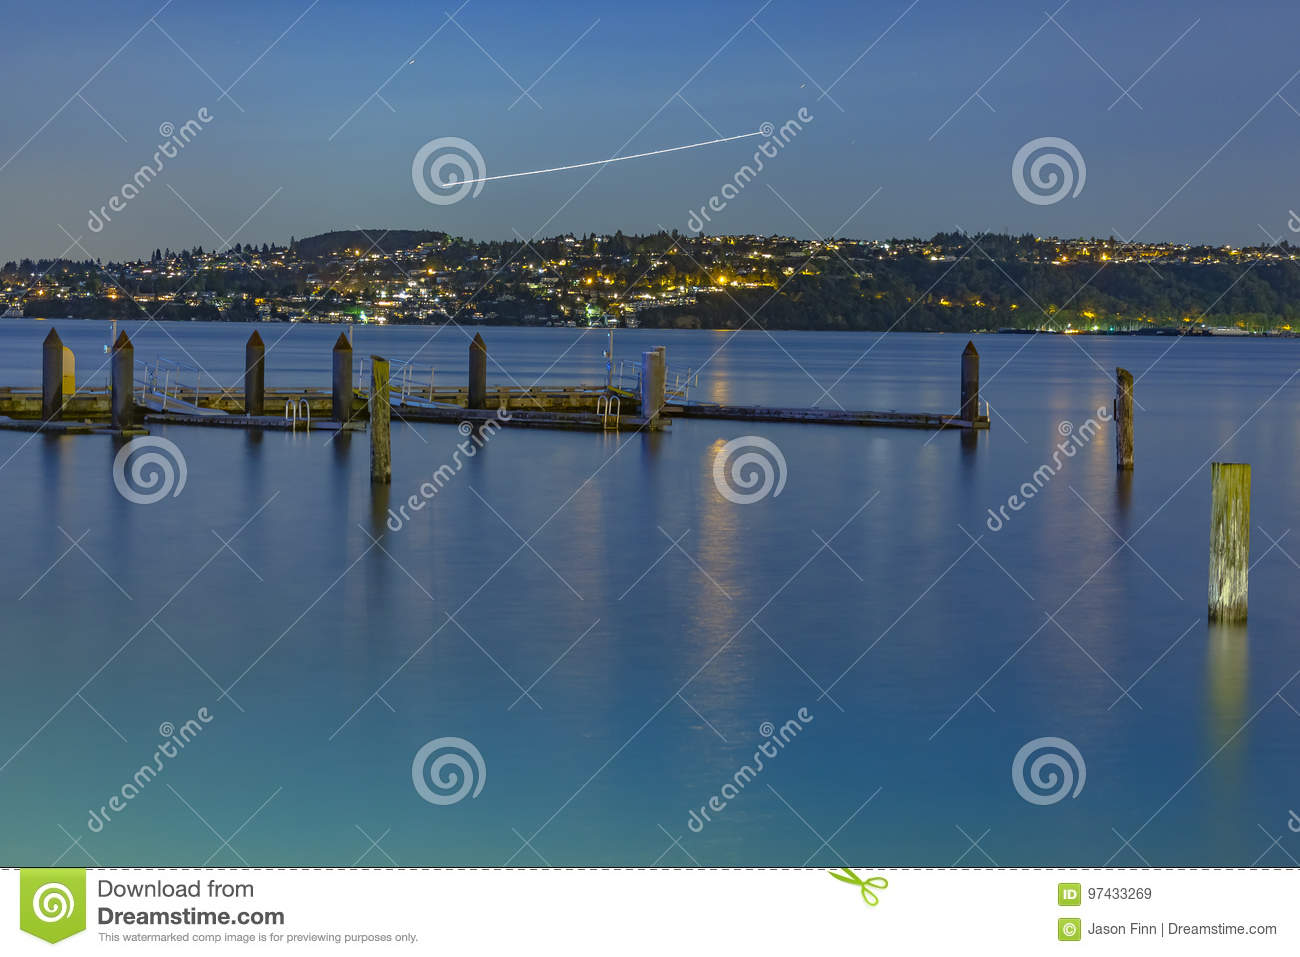 Plain Trails At Night With The Dock And Old Wooden Pillars